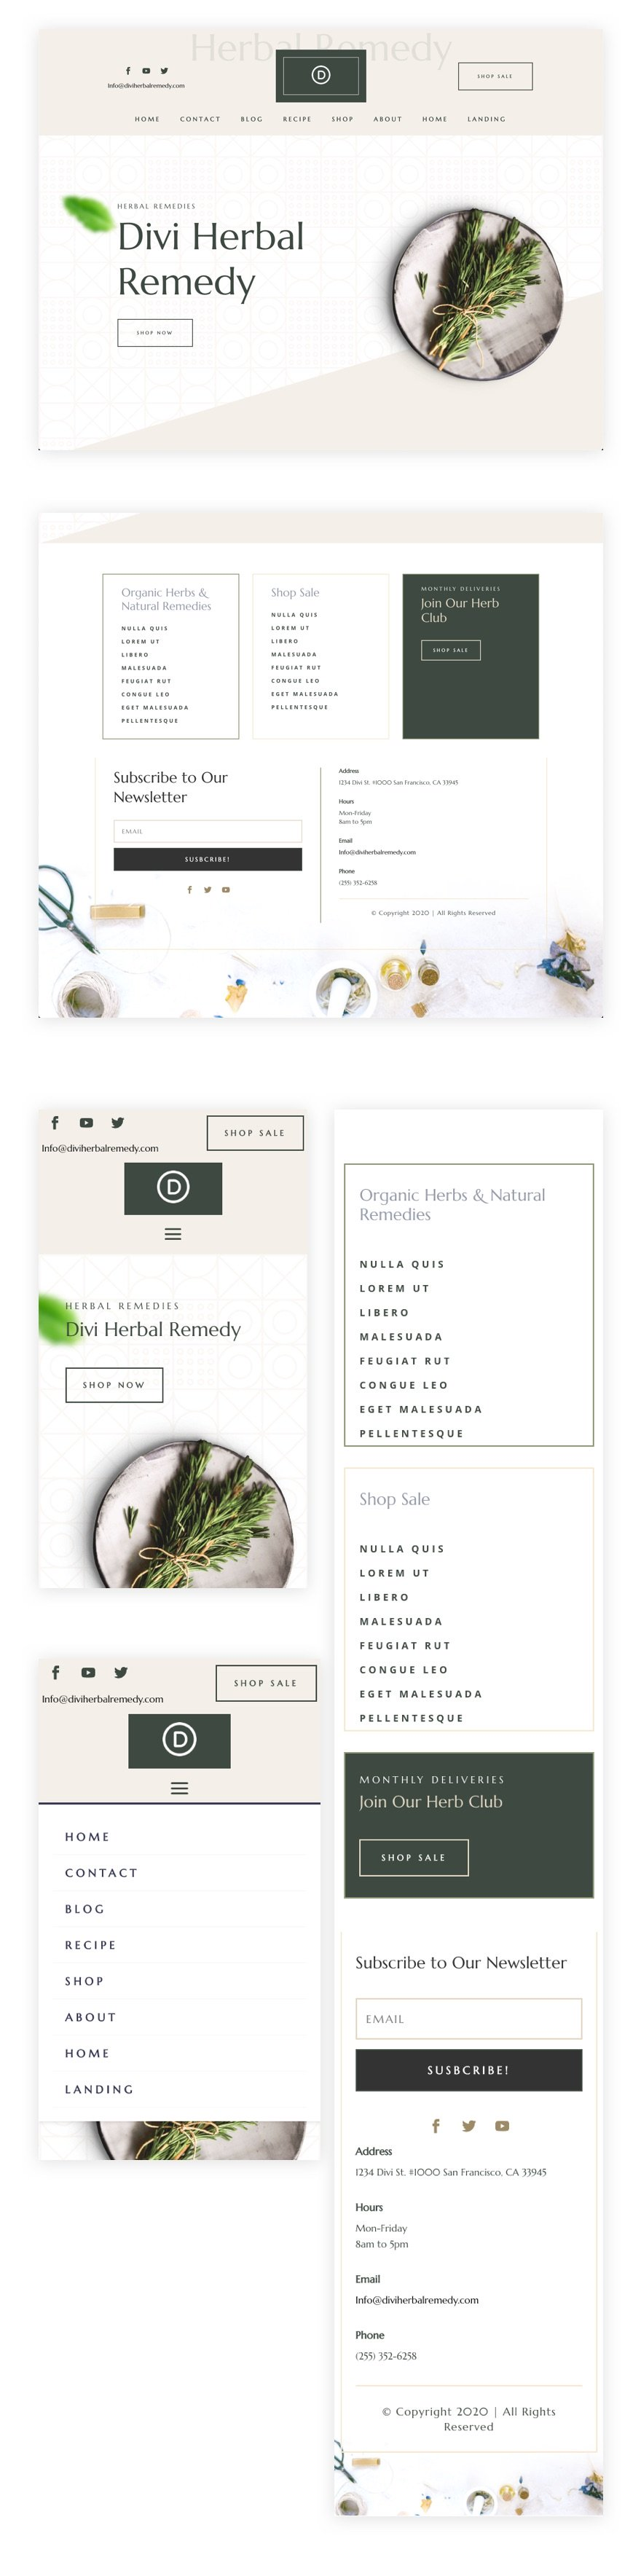 get-a-free-header-footer-for-divis-herbal-remedy-layout-pack-1 Get a FREE Header & Footer for Divi's Herbal Remedy Layout Pack